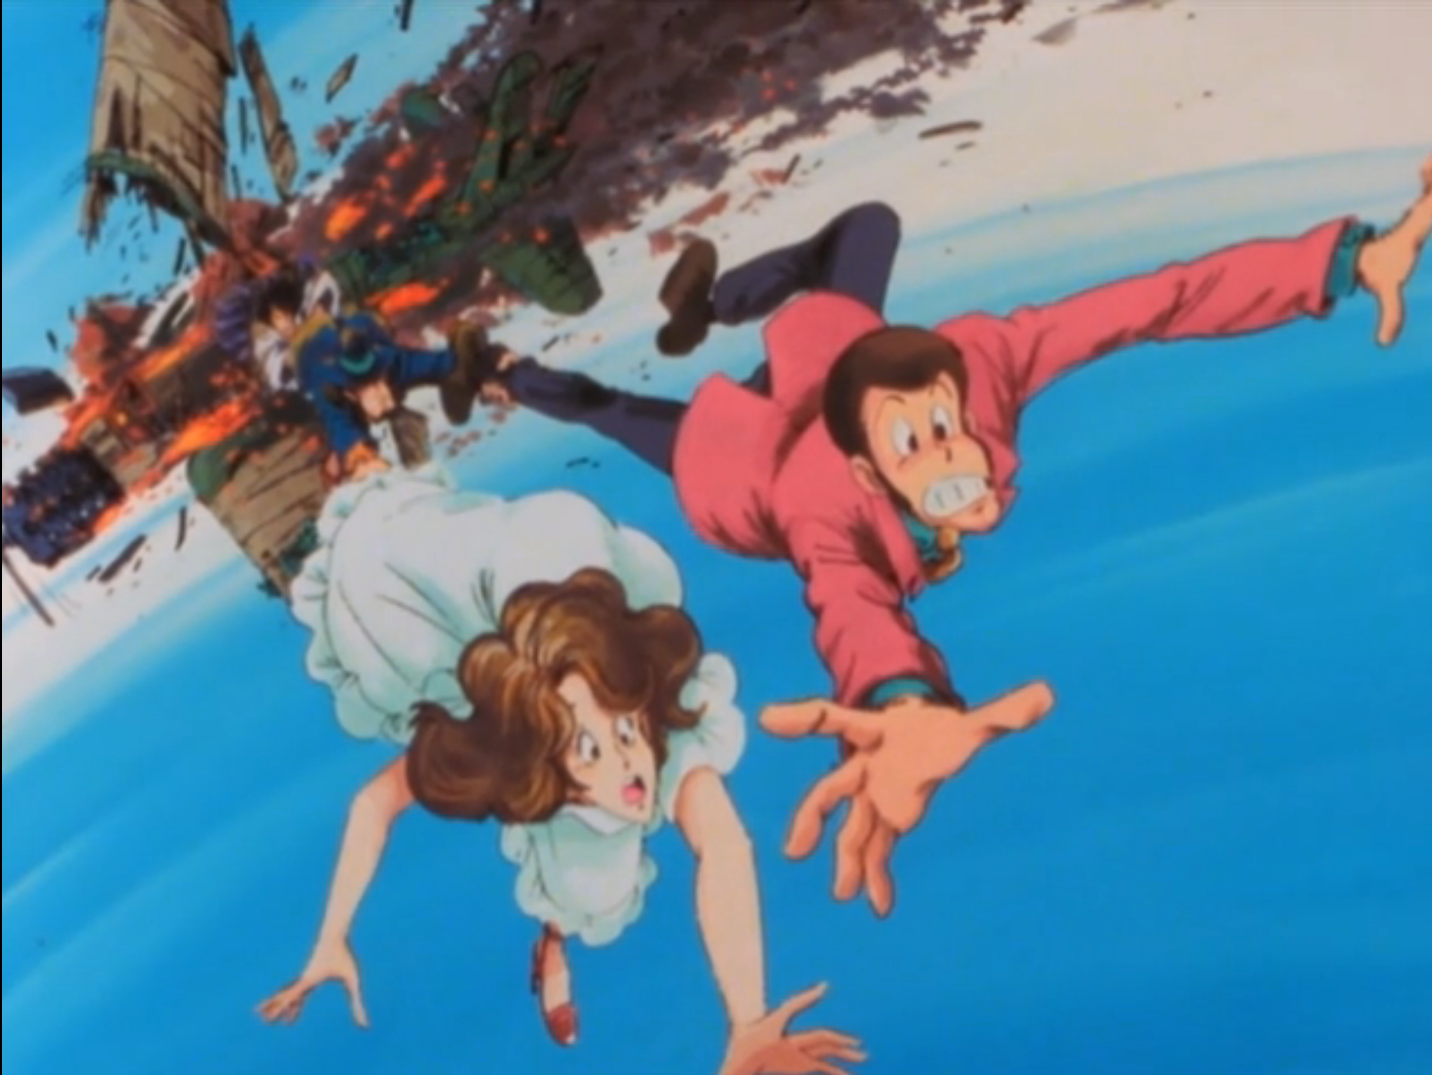 Lupin III: Part III Episode 46 Discussion - Forums